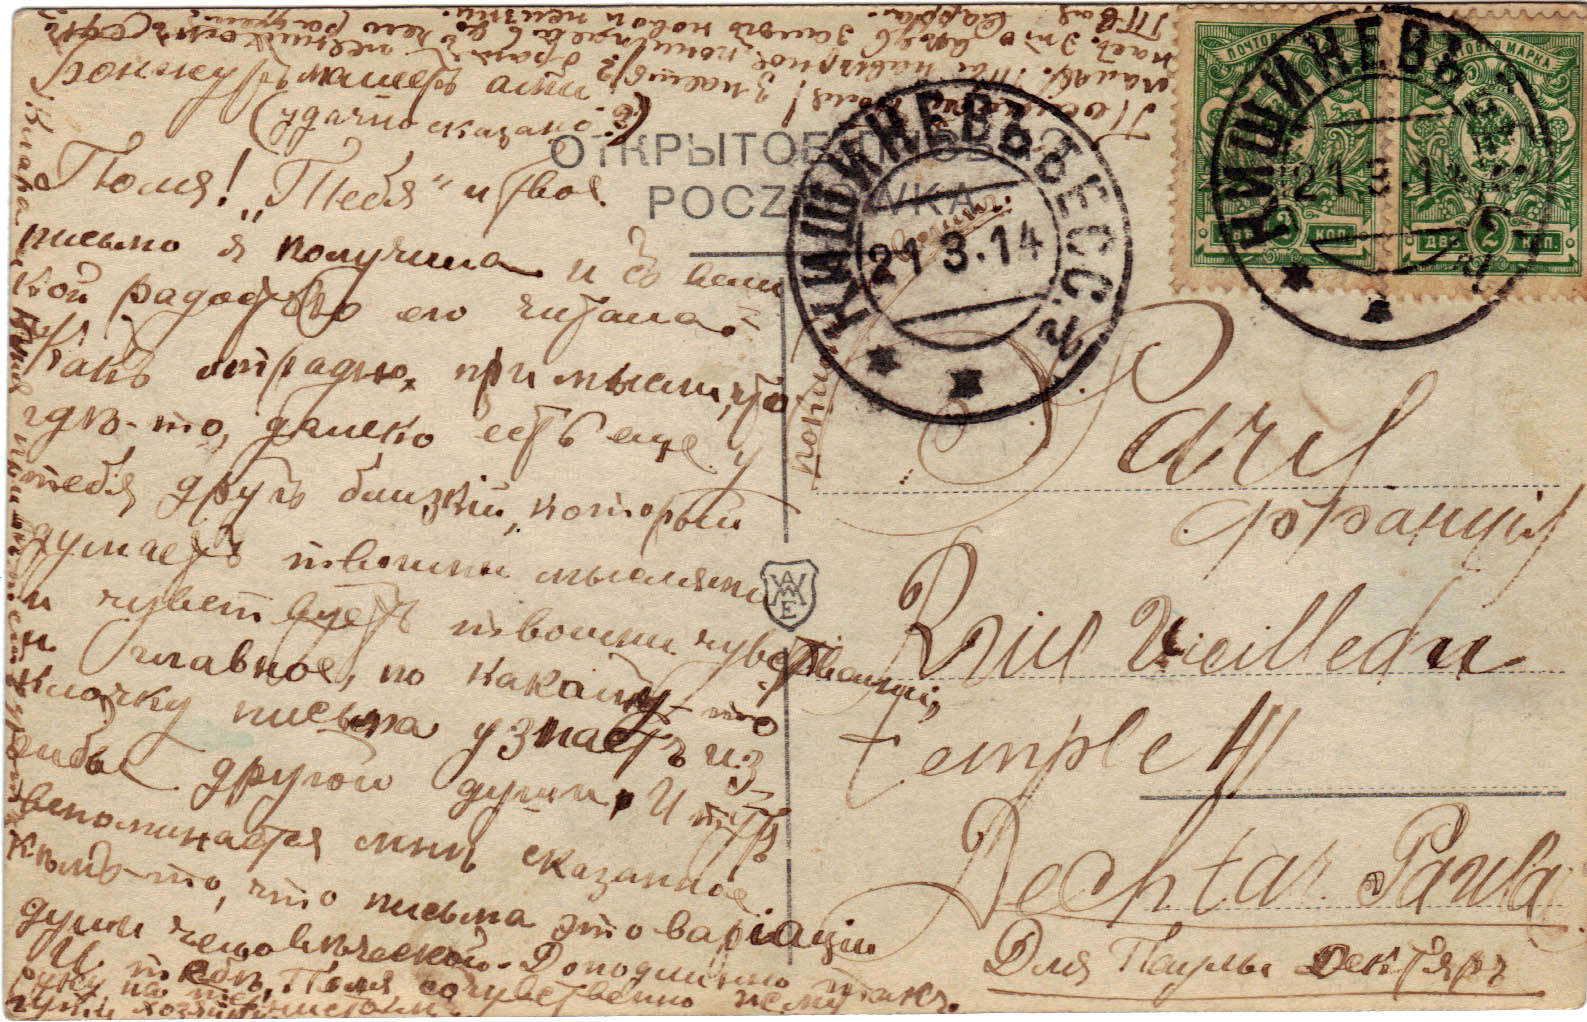 Postcard to Poline from Aron March 22, 1914 B